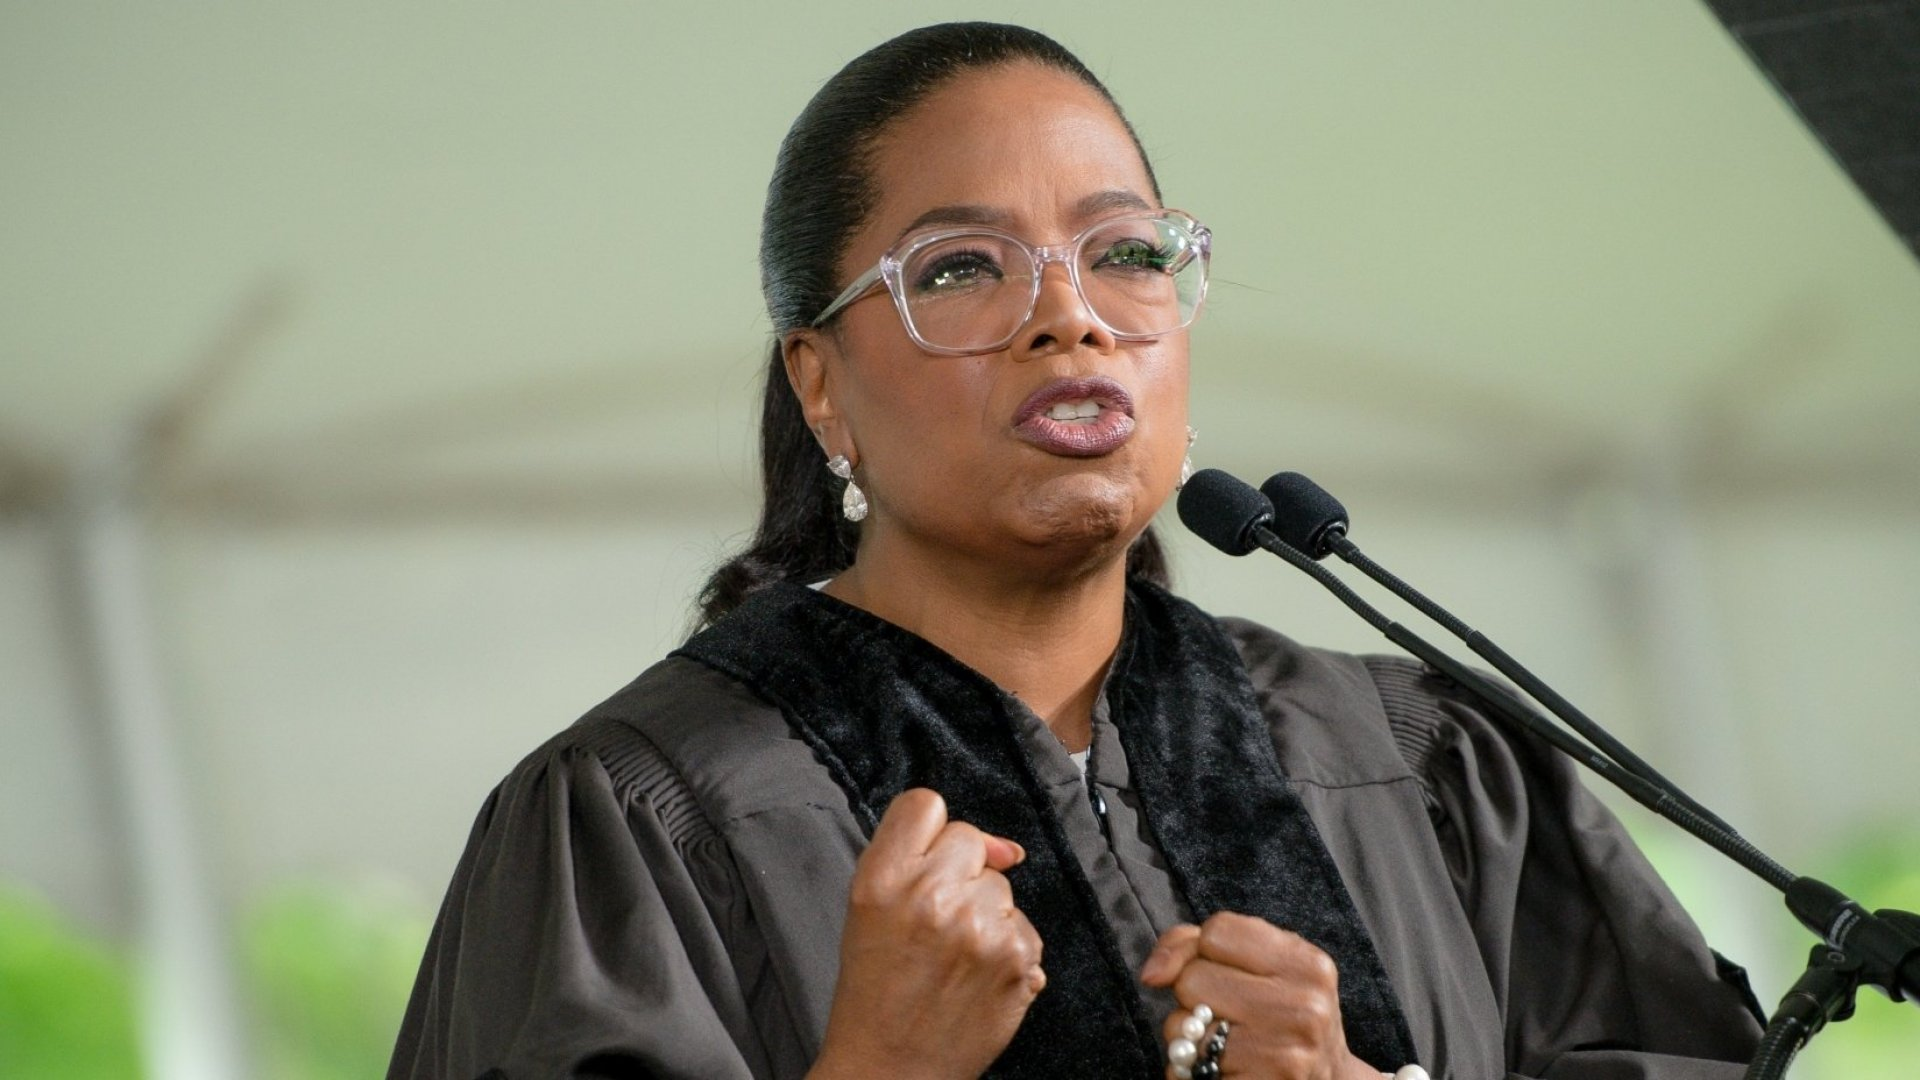 Oprah Winfrey delivers the commencement speech at Agnes Scott College on May 13, 2017 in Decatur, Georgia.